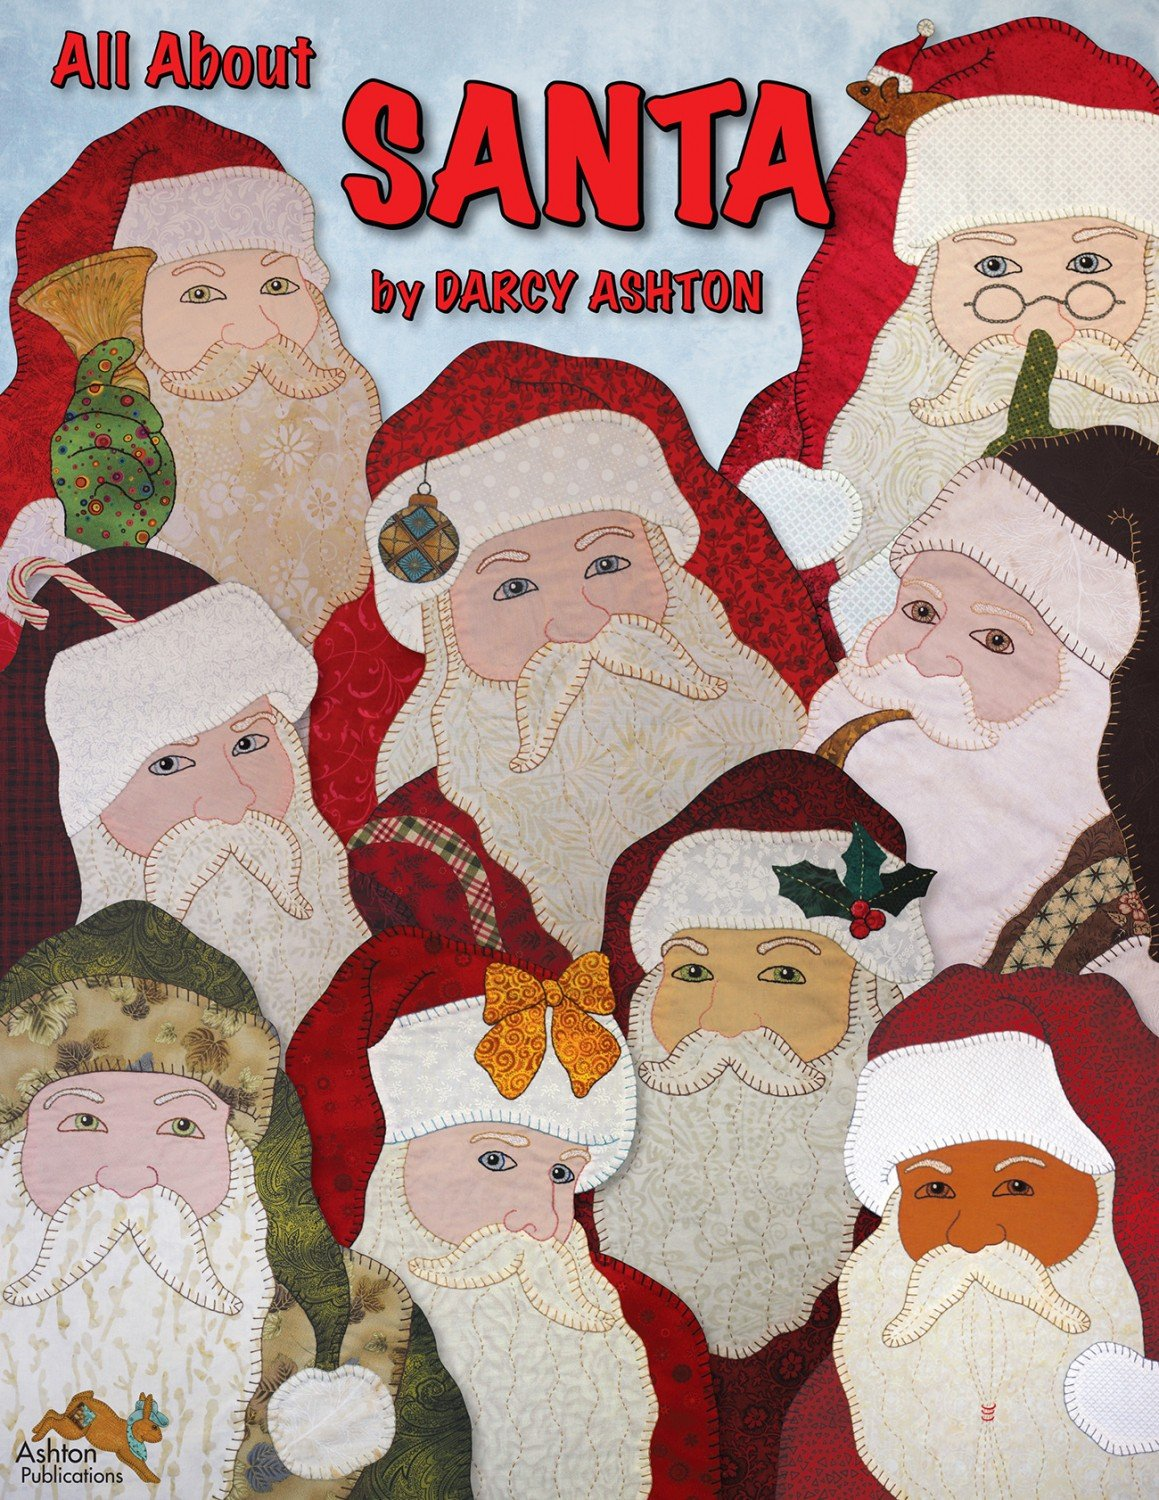 All About Santa Book